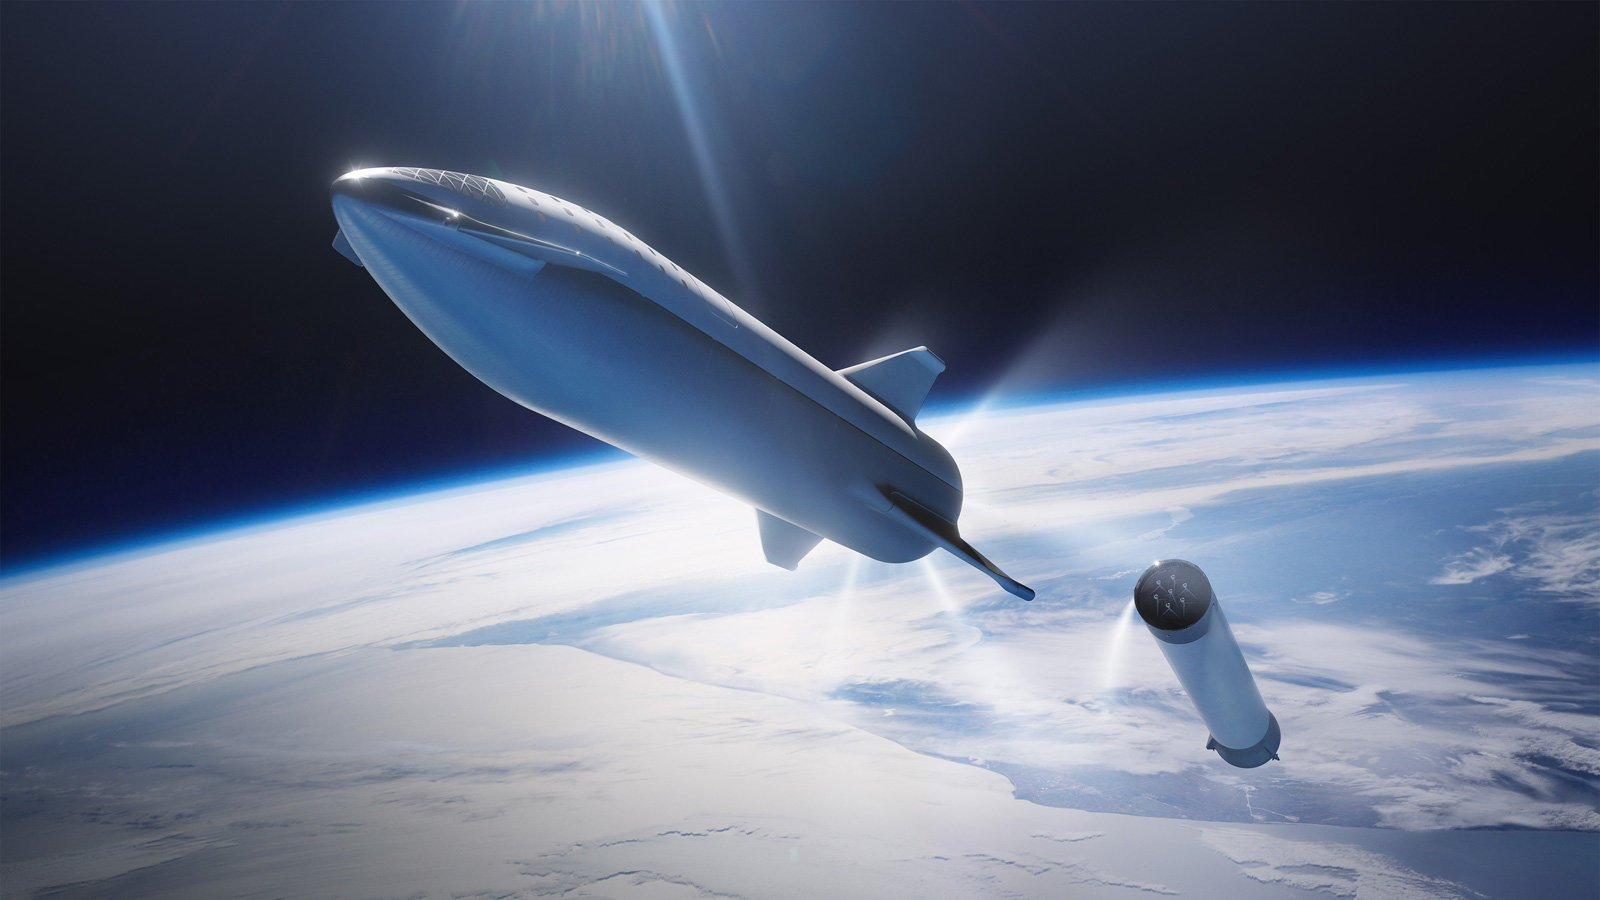 spacex, spacex starship, elon musk, elon musk spacex, spacex starship design, spacex starship news